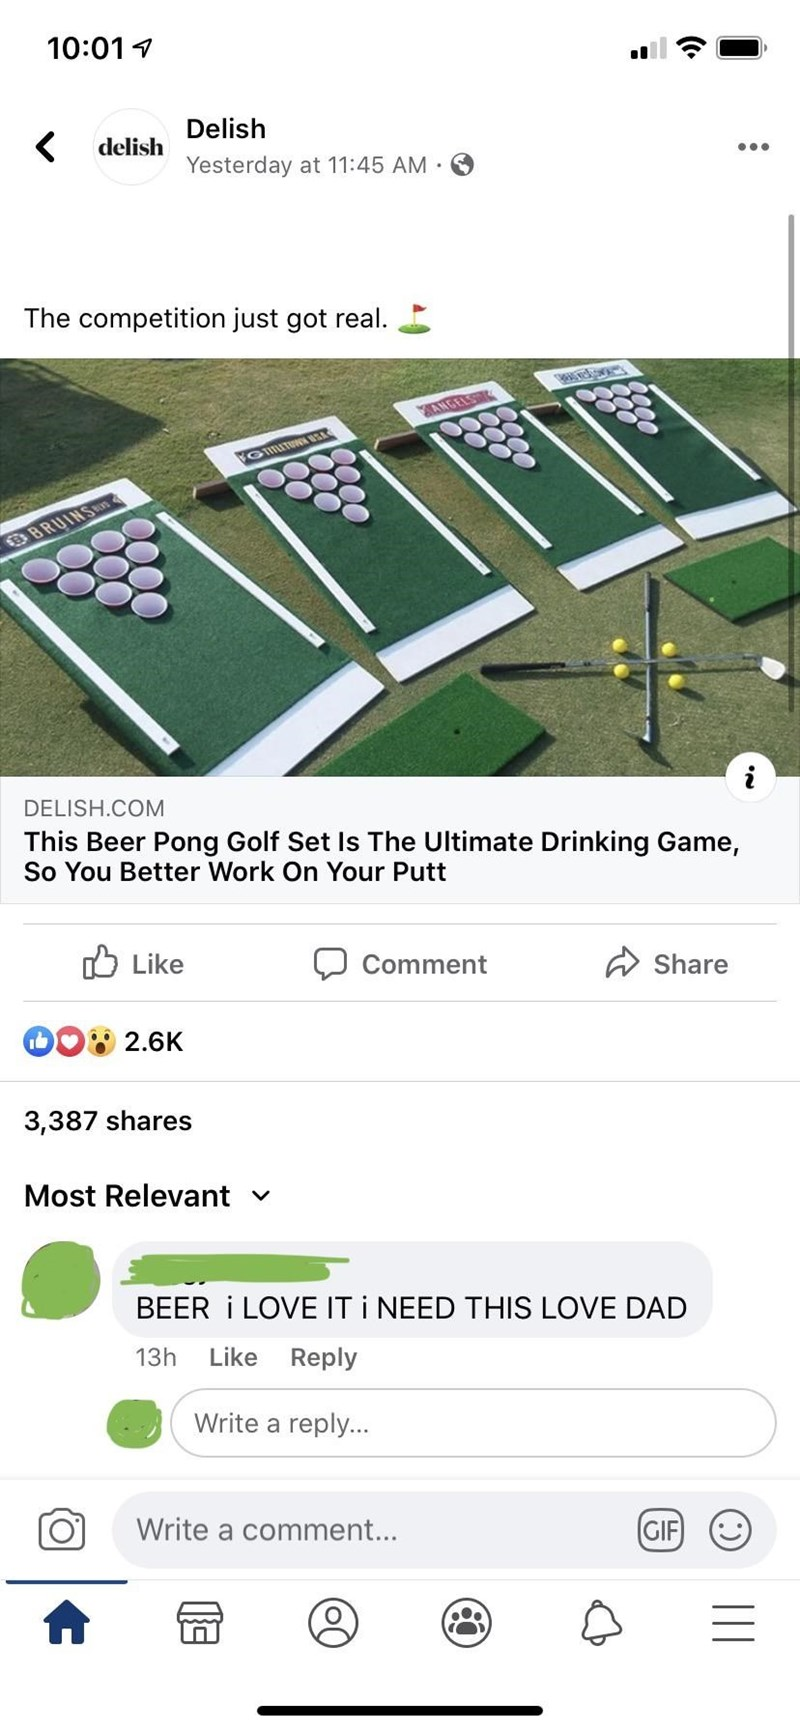 Games - 10:01 1 Delish delish Yesterday at 11:45 AM · The competition just got real. ANGELS GITUNN USA BRUINS DELISH.COM This Beer Pong Golf Set Is The Ultimate Drinking Game, So You Better Work On Your Putt O Like Comment Share 2.6K 3,387 shares Most Relevant v BEER I LOVE IT I NEED THIS LOVE DAD 13h Like Reply Write a reply... Write a comment... (GIF :)    10000 0) 0000 00